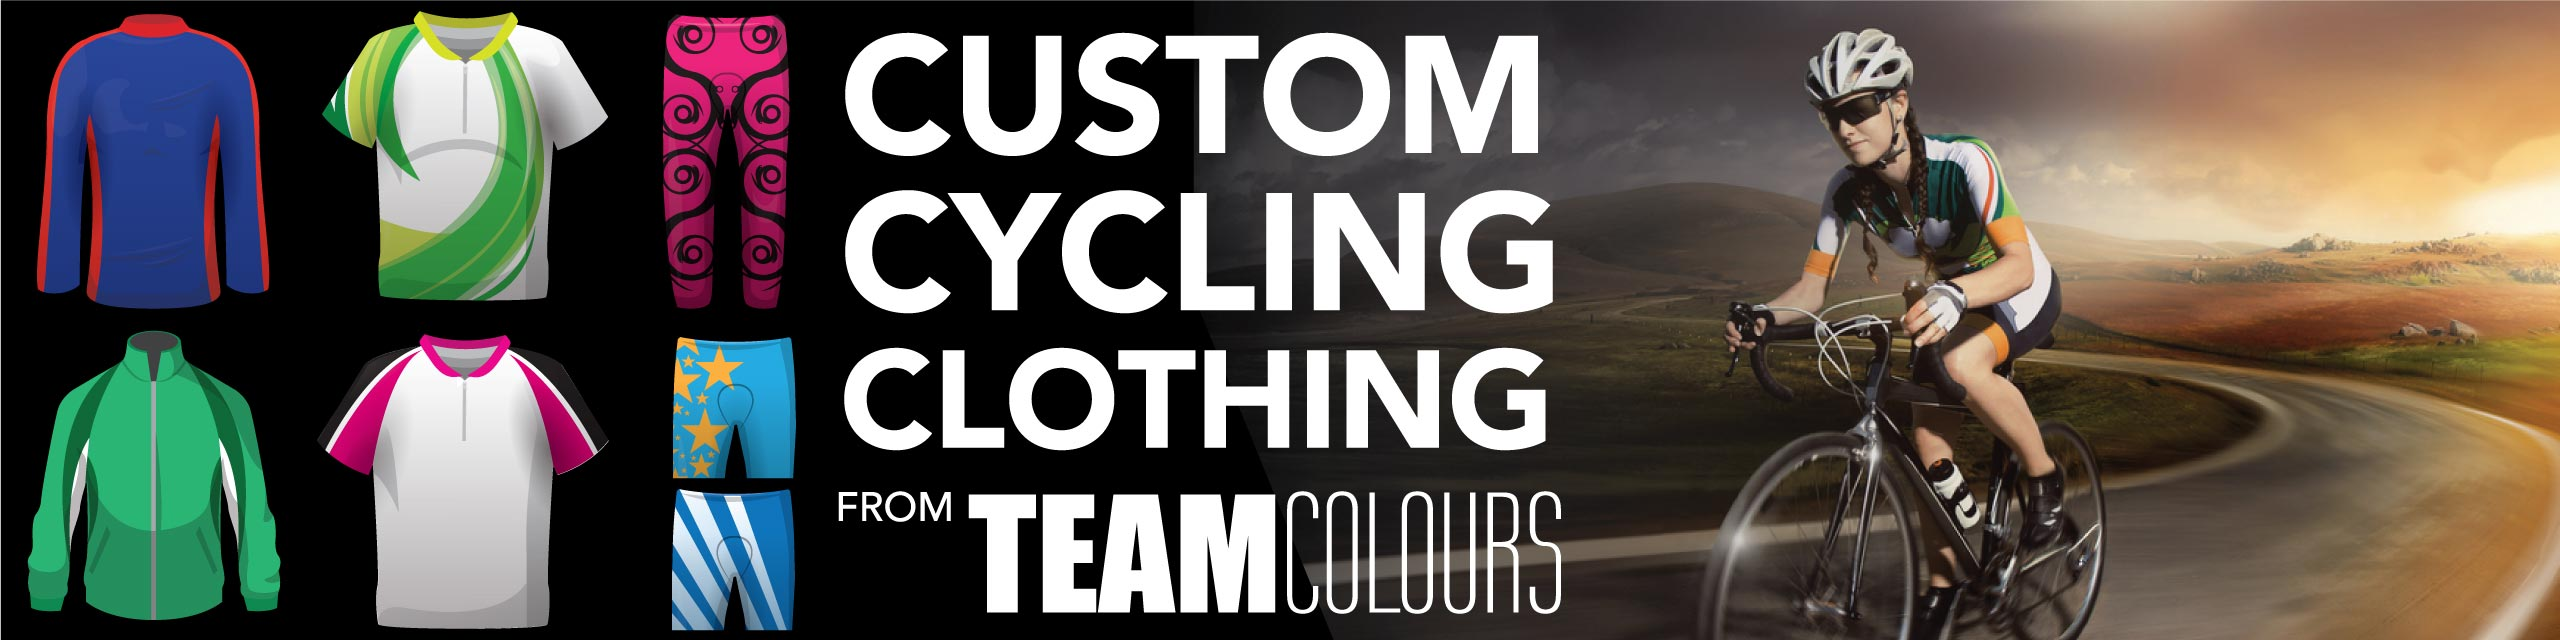 Design you own cycling and bicycle clothing at Team Colours